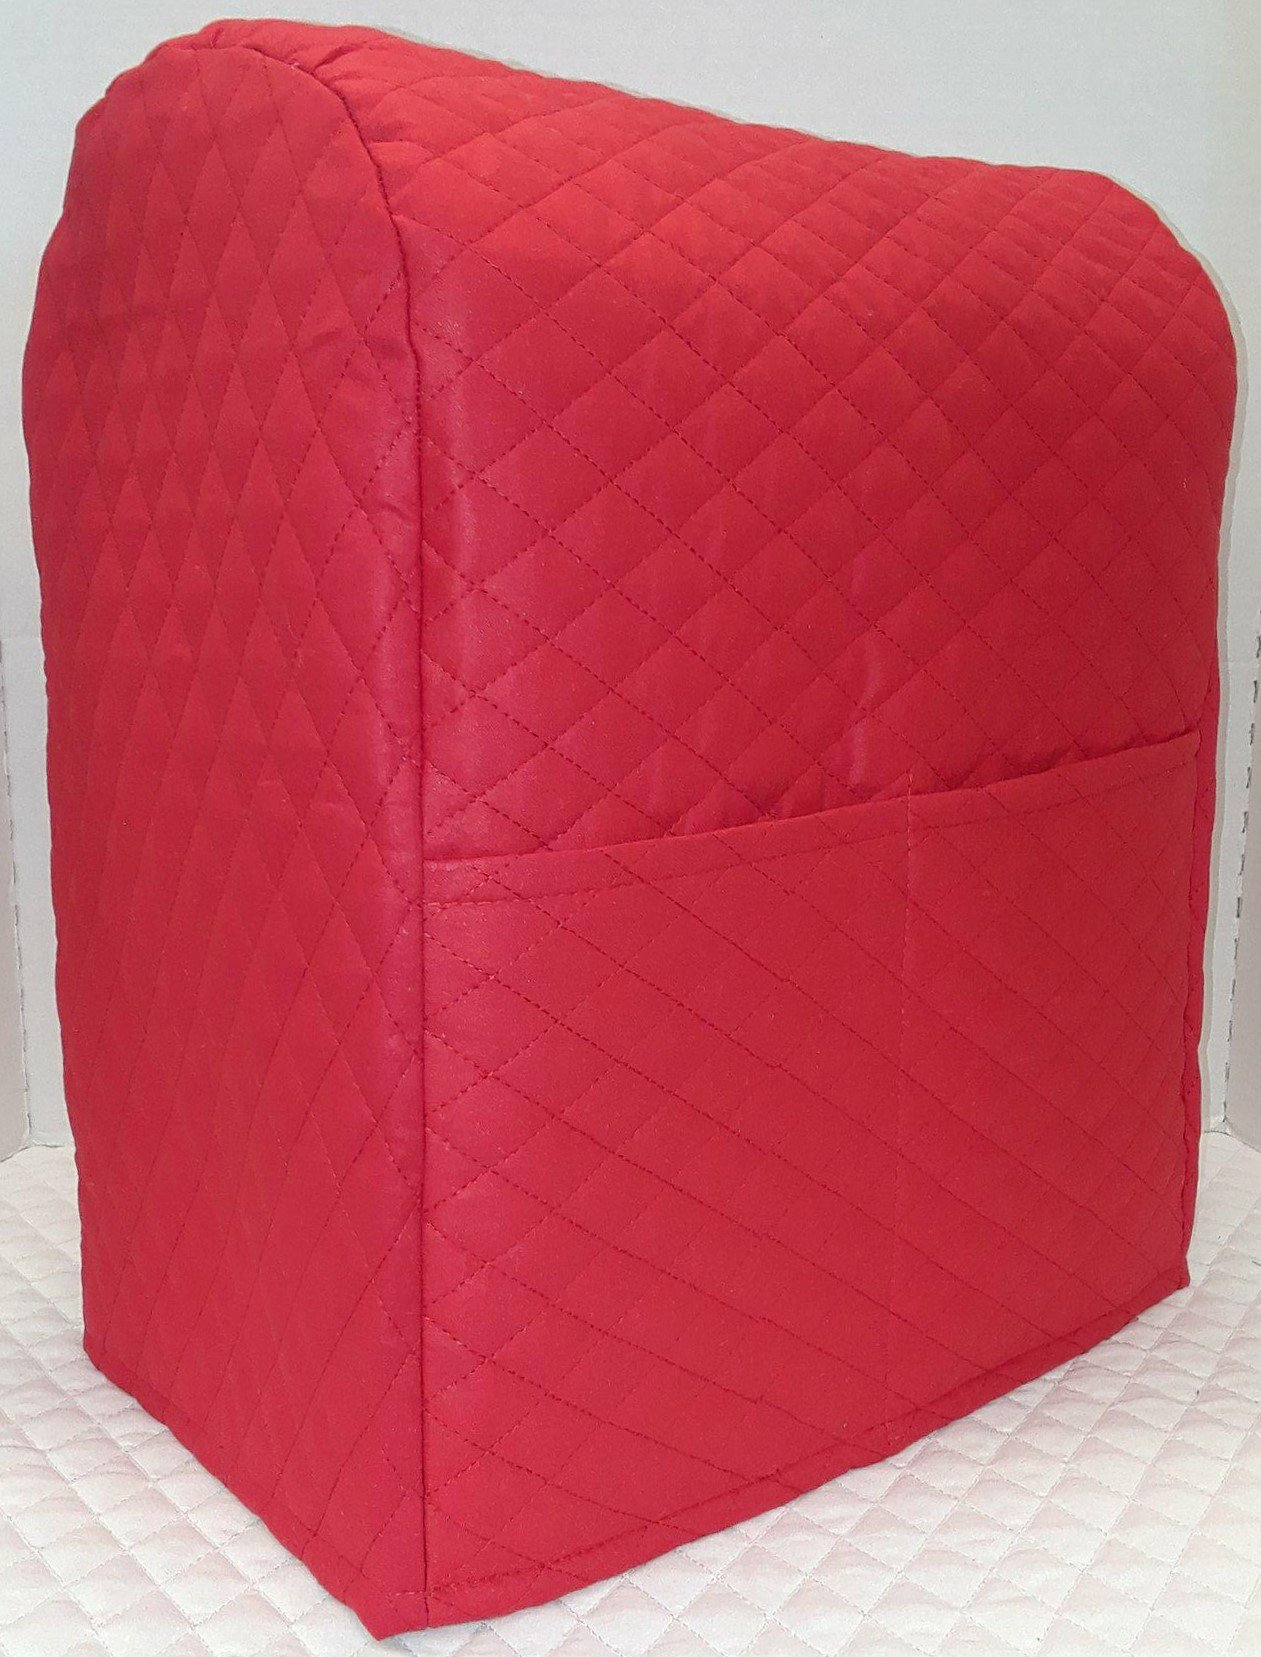 Quilted Kitchenaid Stand Mixer Cover (Red, 4.5,5,6qt Lift Bowl)